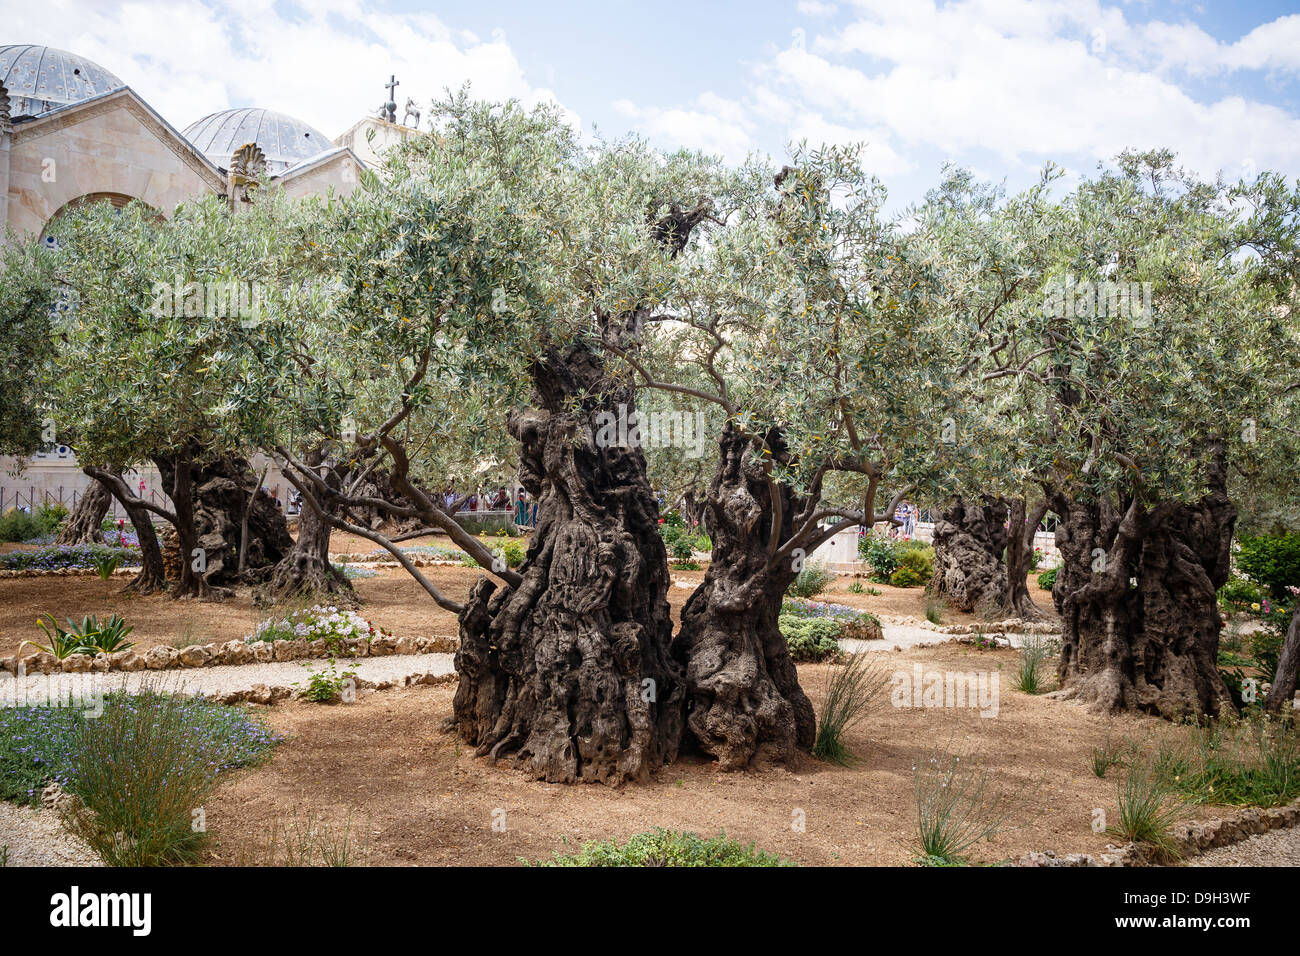 Olive trees in the garden of gethsemane jerusalem israel for Age olive trees garden gethsemane